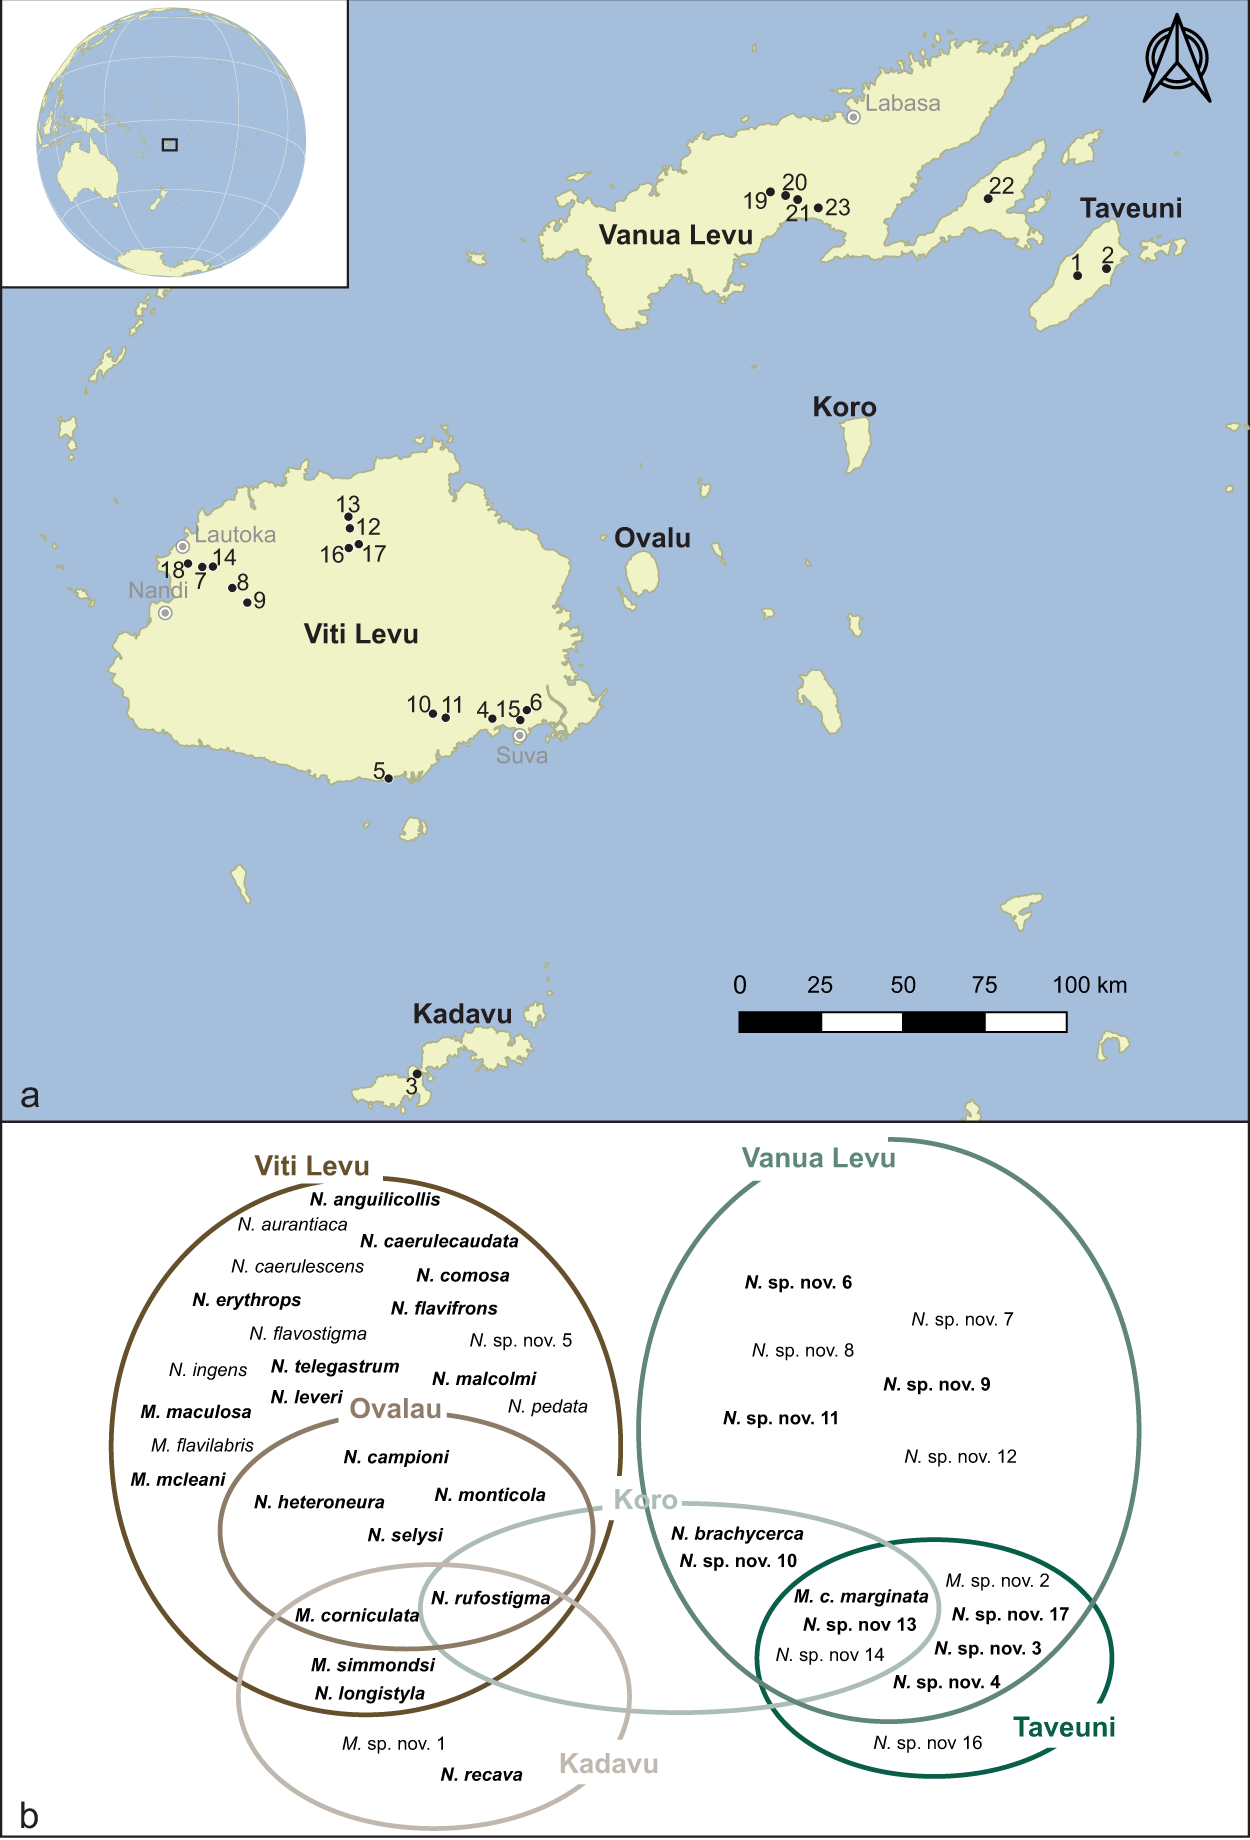 Widespread Wolbachia infection in an insular radiation of